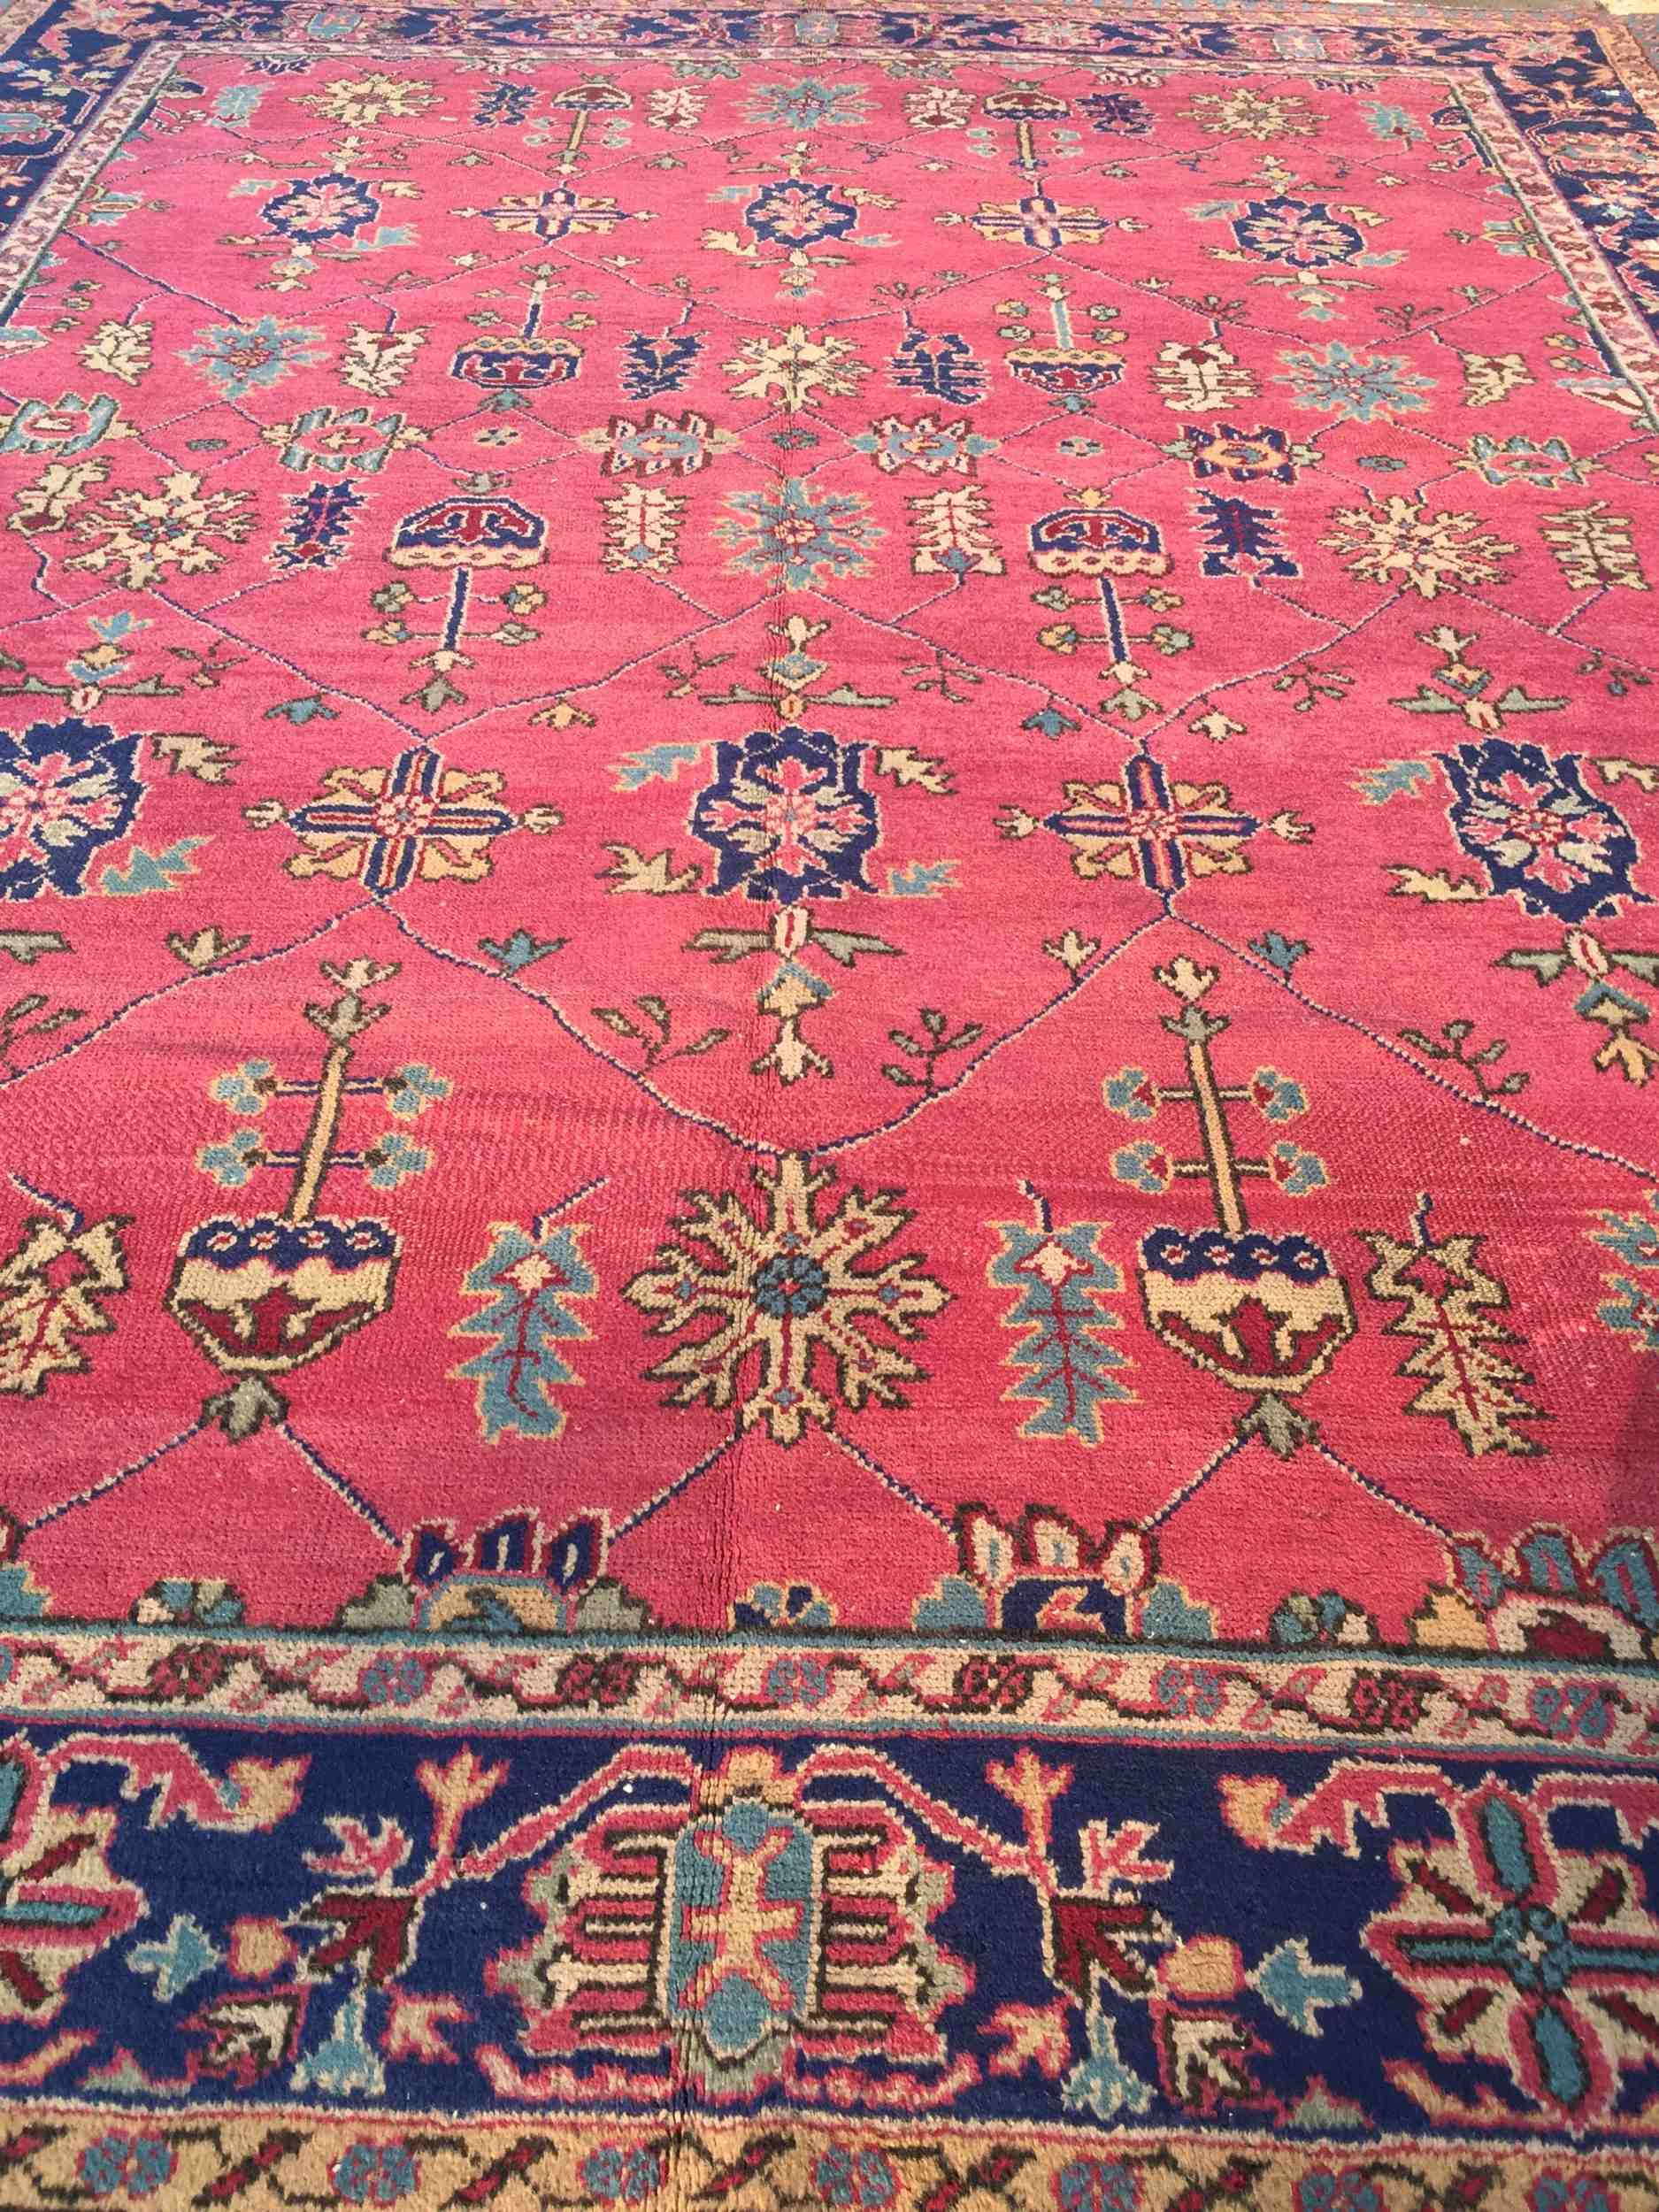 Vintage Turkish Rug 10x12 Oushak Isparta Rug With Images Vintage Turkish Rugs Turkish Rug Rugs